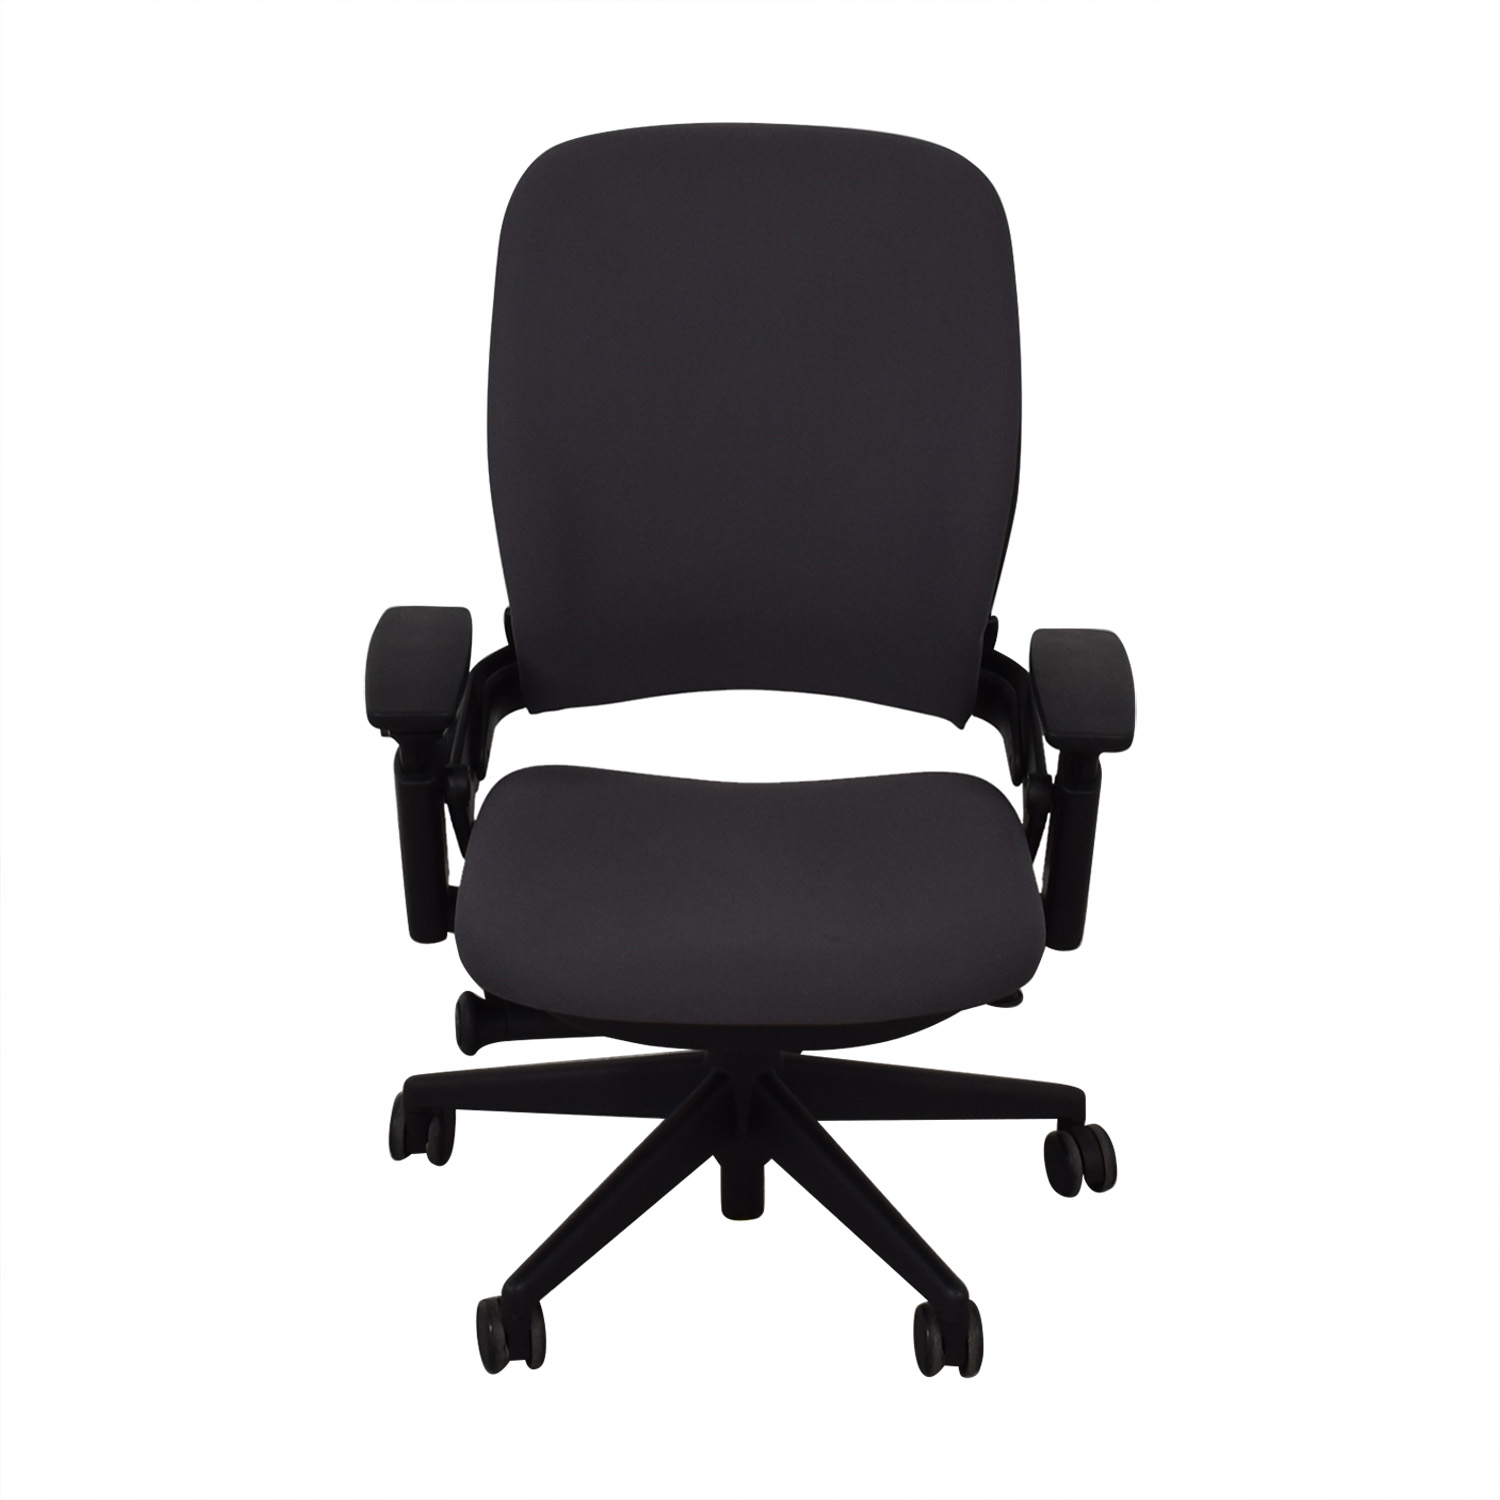 Steelcase Steelcase Leap V2 Office Chair Tables